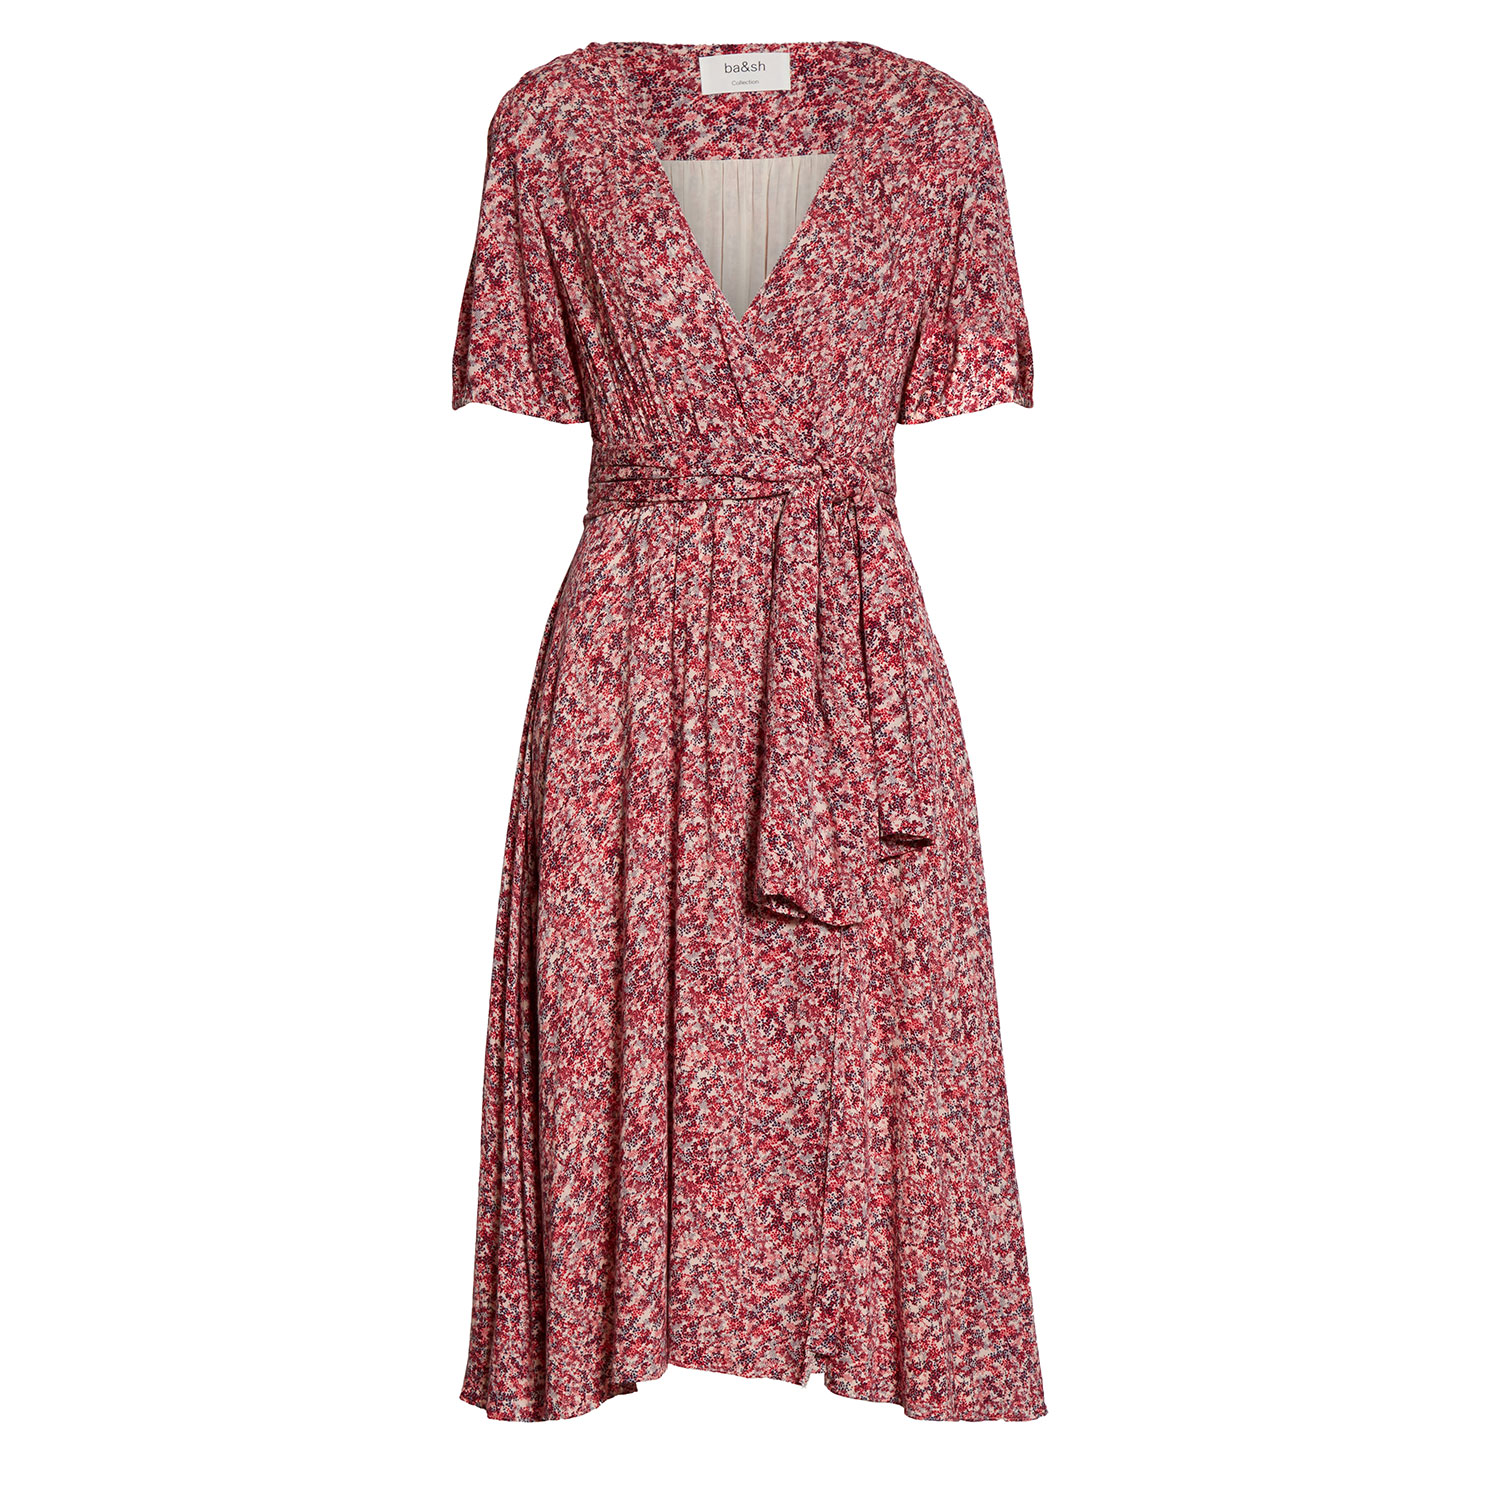 ba&sh Noemie Floral Short Sleeve Wrap Midi Dress